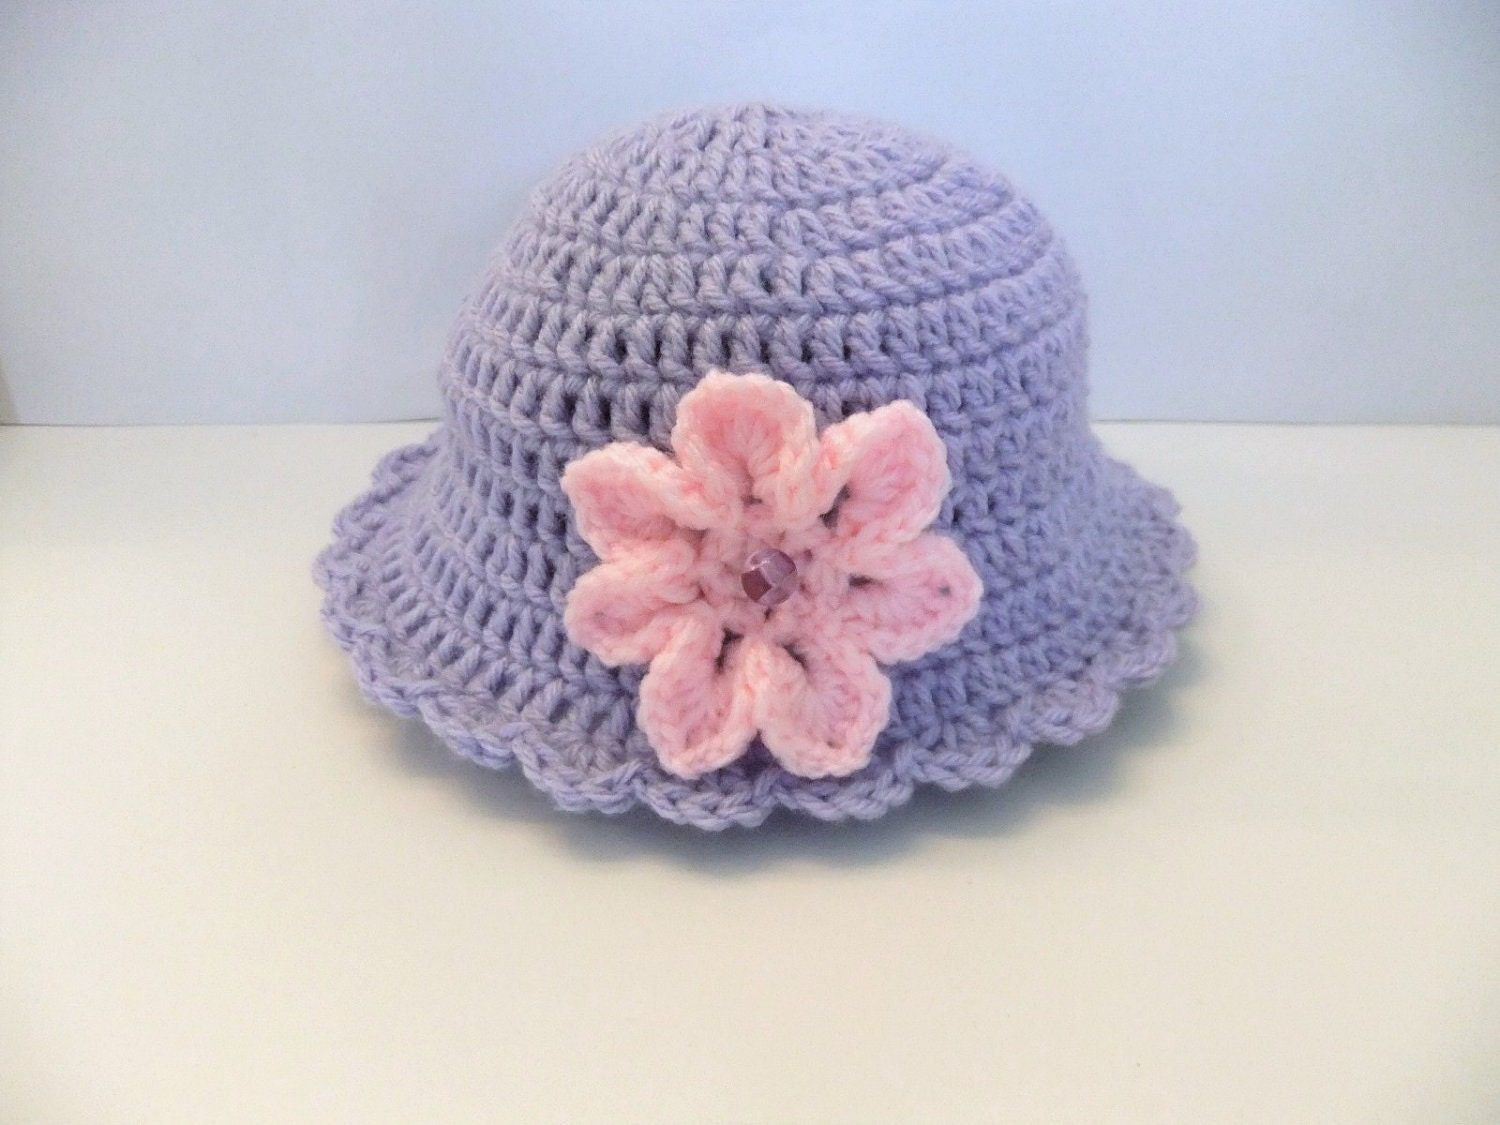 "Purple Handmade Baby Crochet Sun Hat, 17.5"" Round with Flower, 0-6 Months, Doll, Accessory, Gift, Shower, New Born"